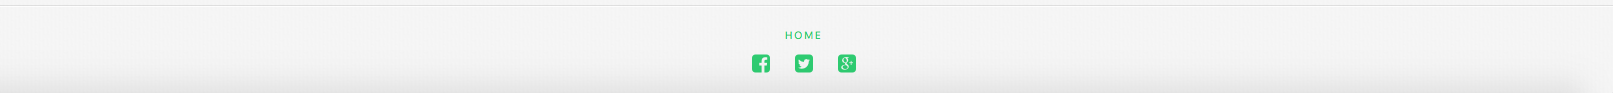 Social Icons on